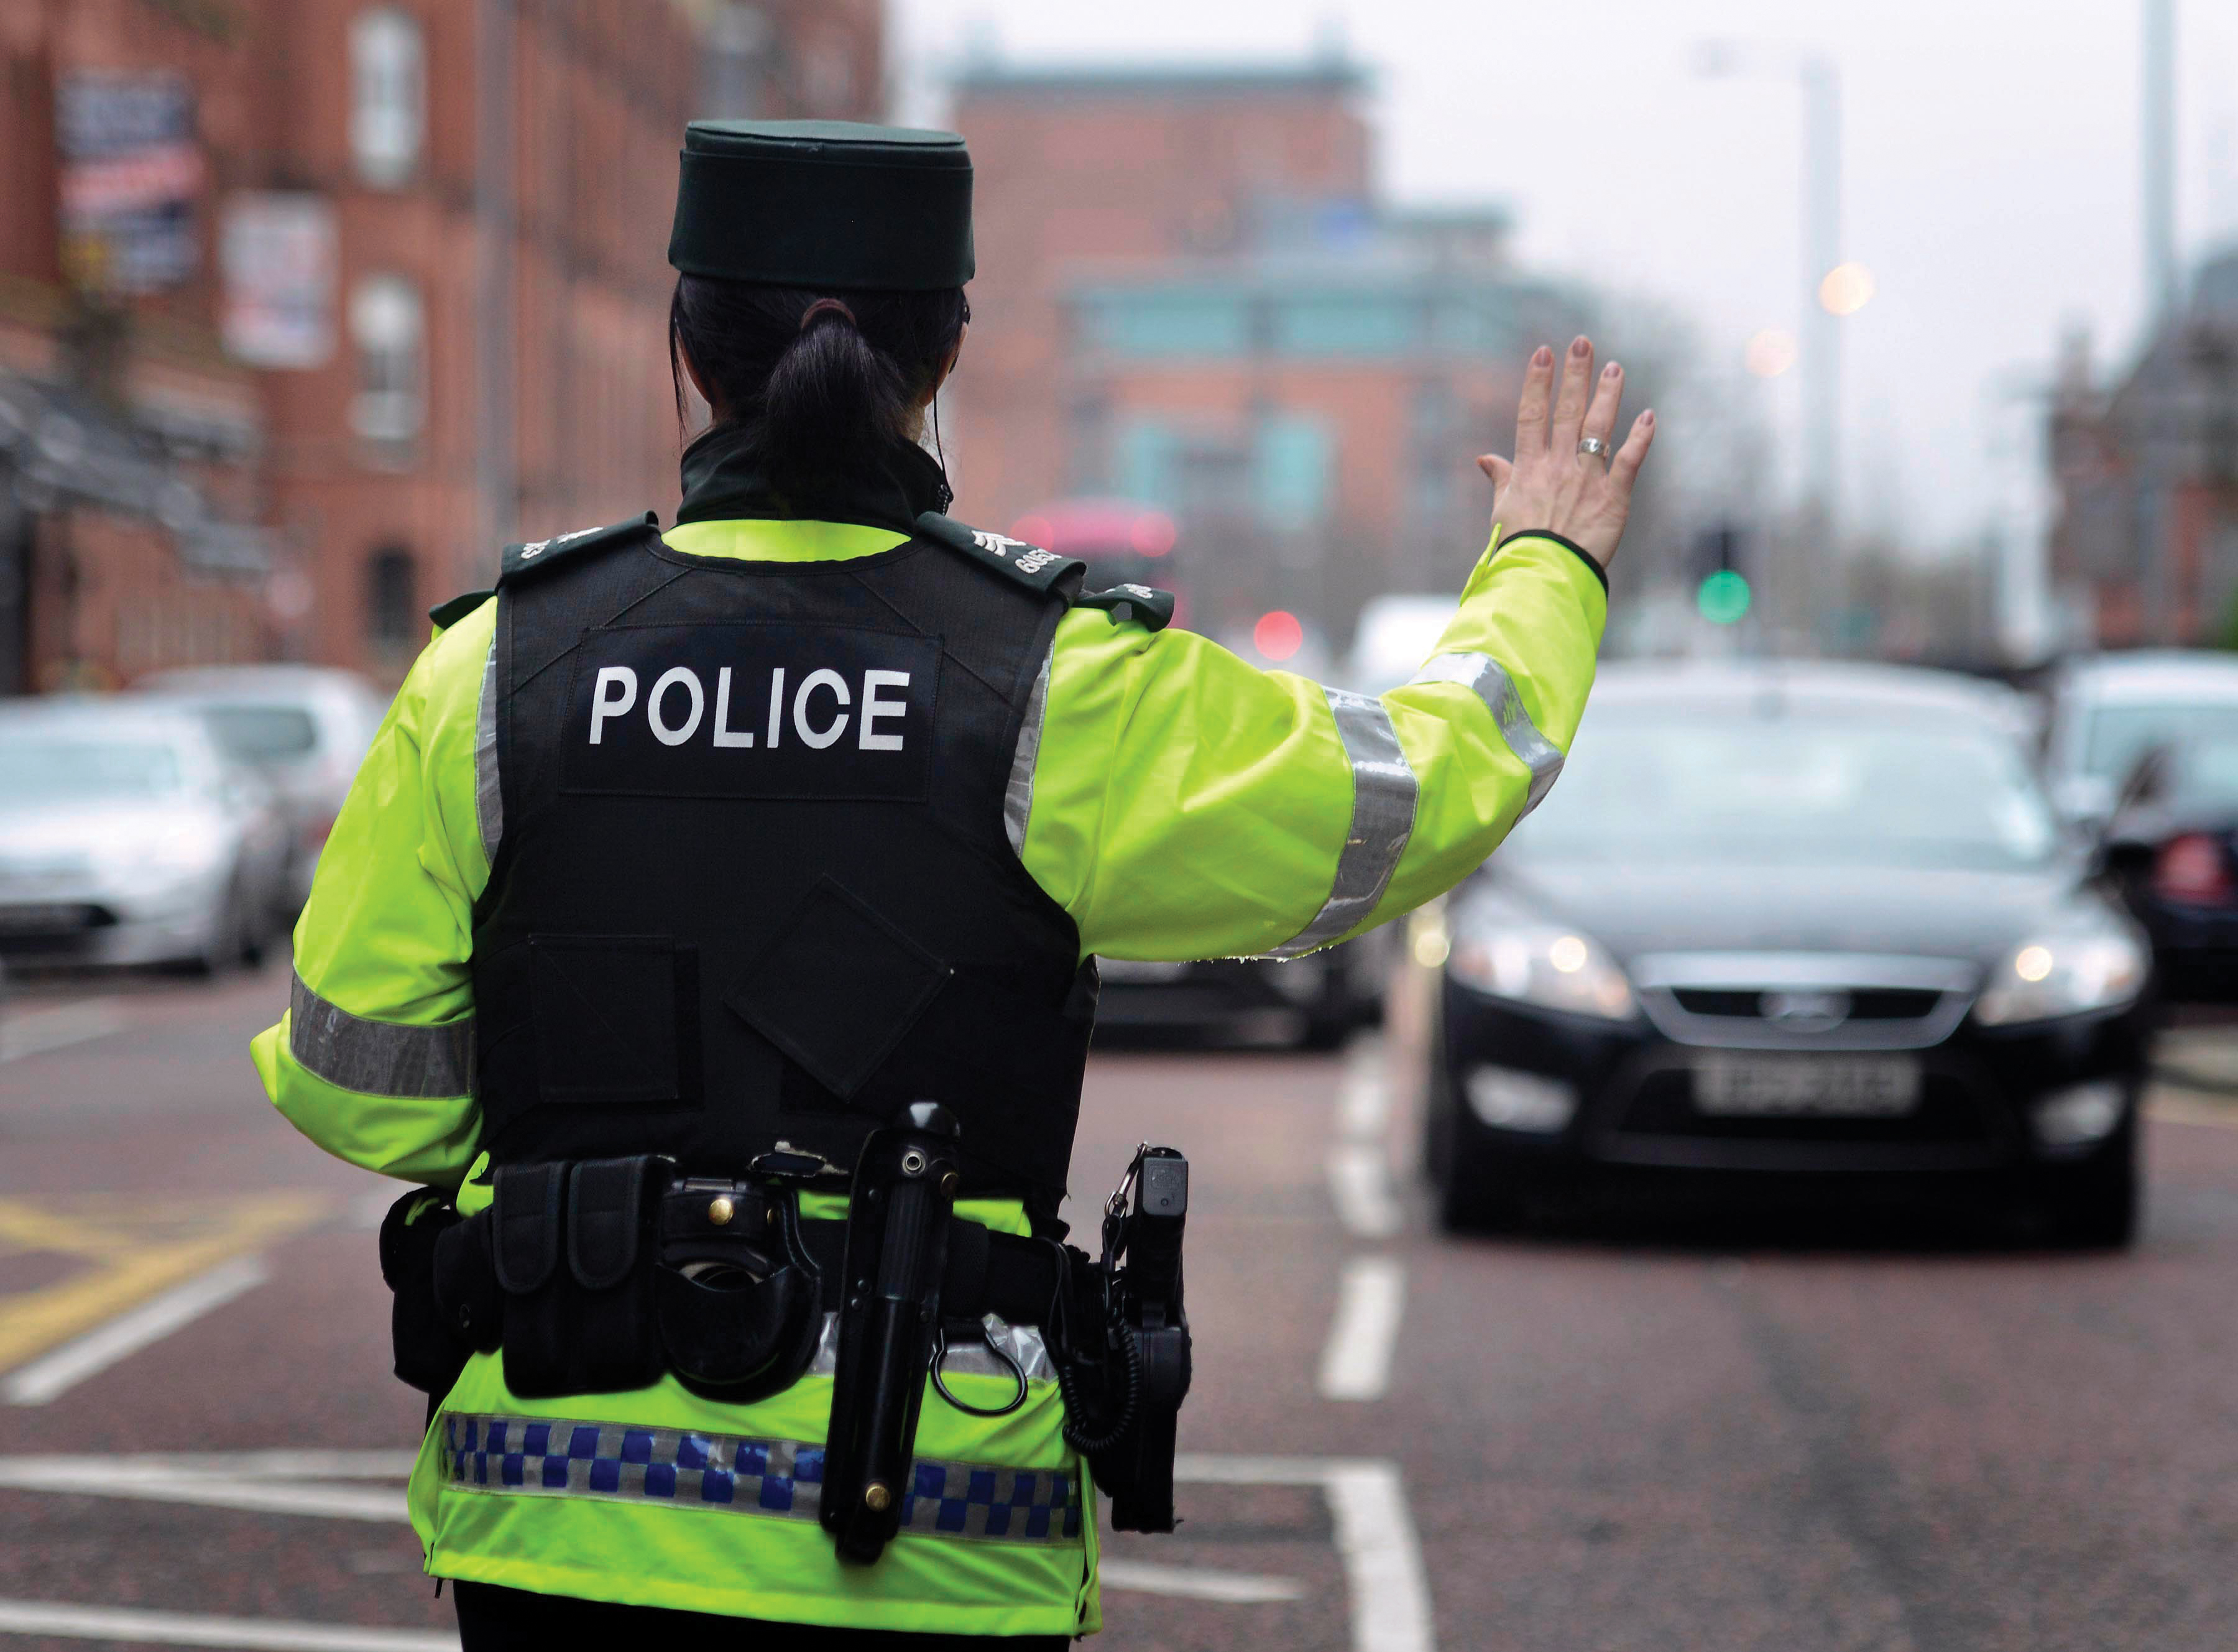 Federation says Police job losses 'unacceptable and dangerous'